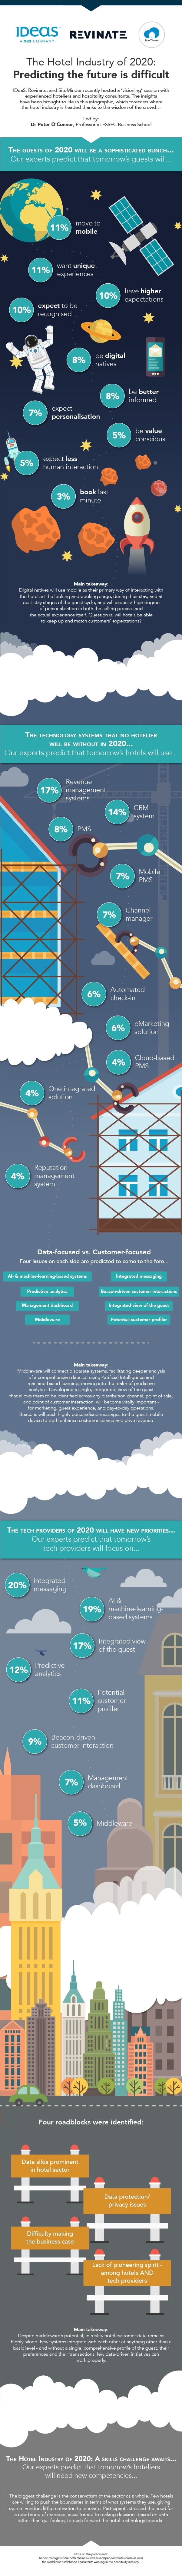 INFOGRAPHIC: The Hotel Industry of 2020